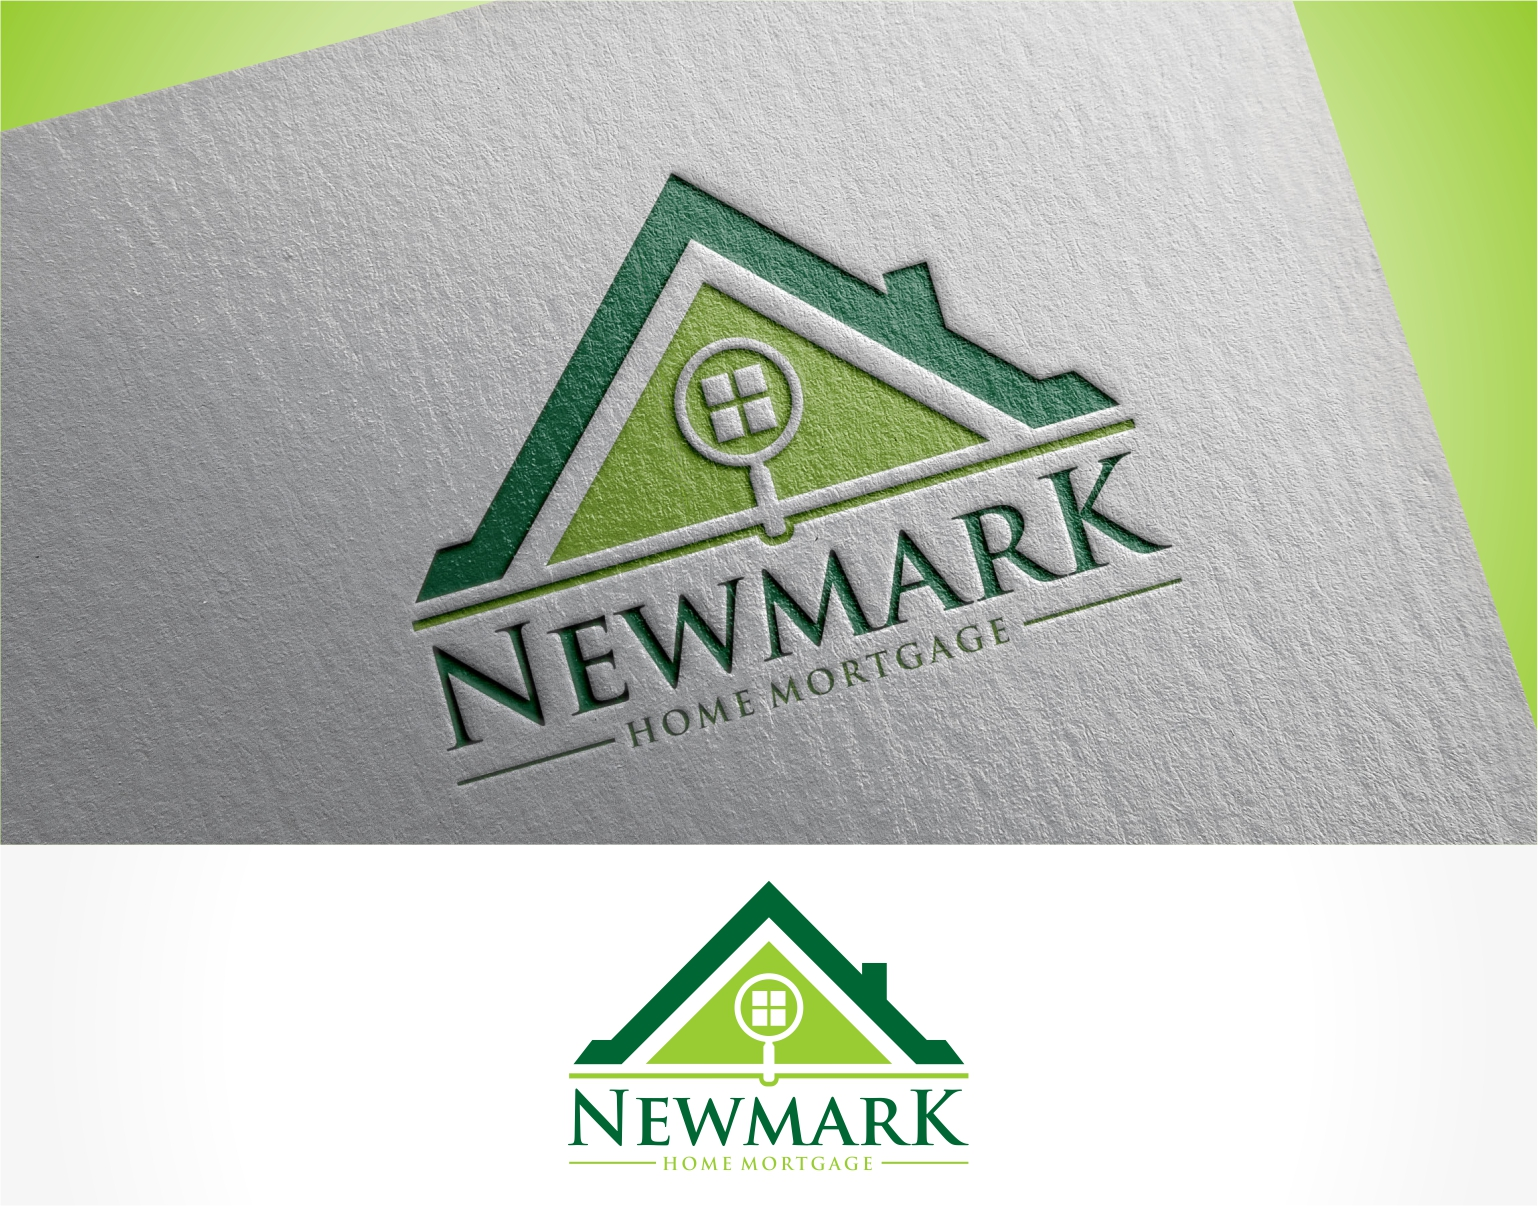 Logo Design Contest for NewMark Home Mortgage | Hatchwise